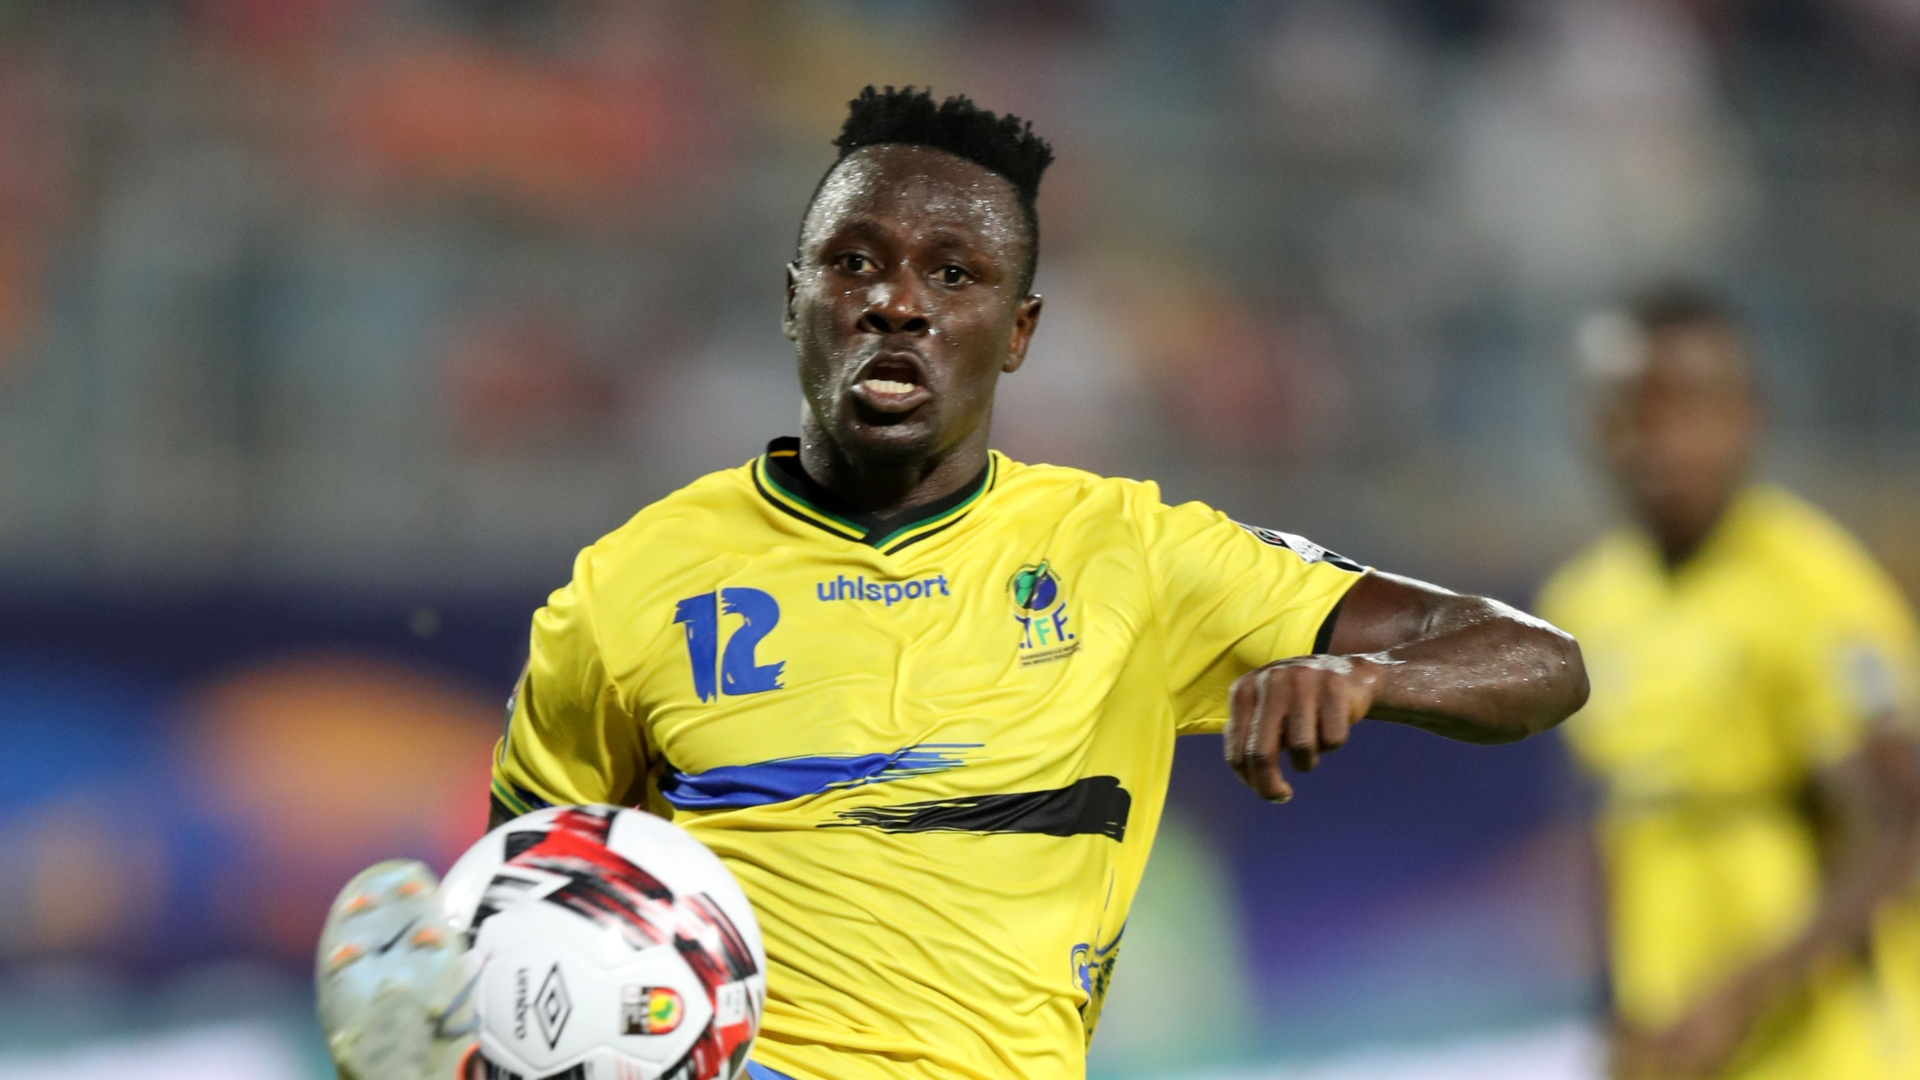 2021 Afcon Qualifiers: Tanzania can make it to Cameroon - Msuva